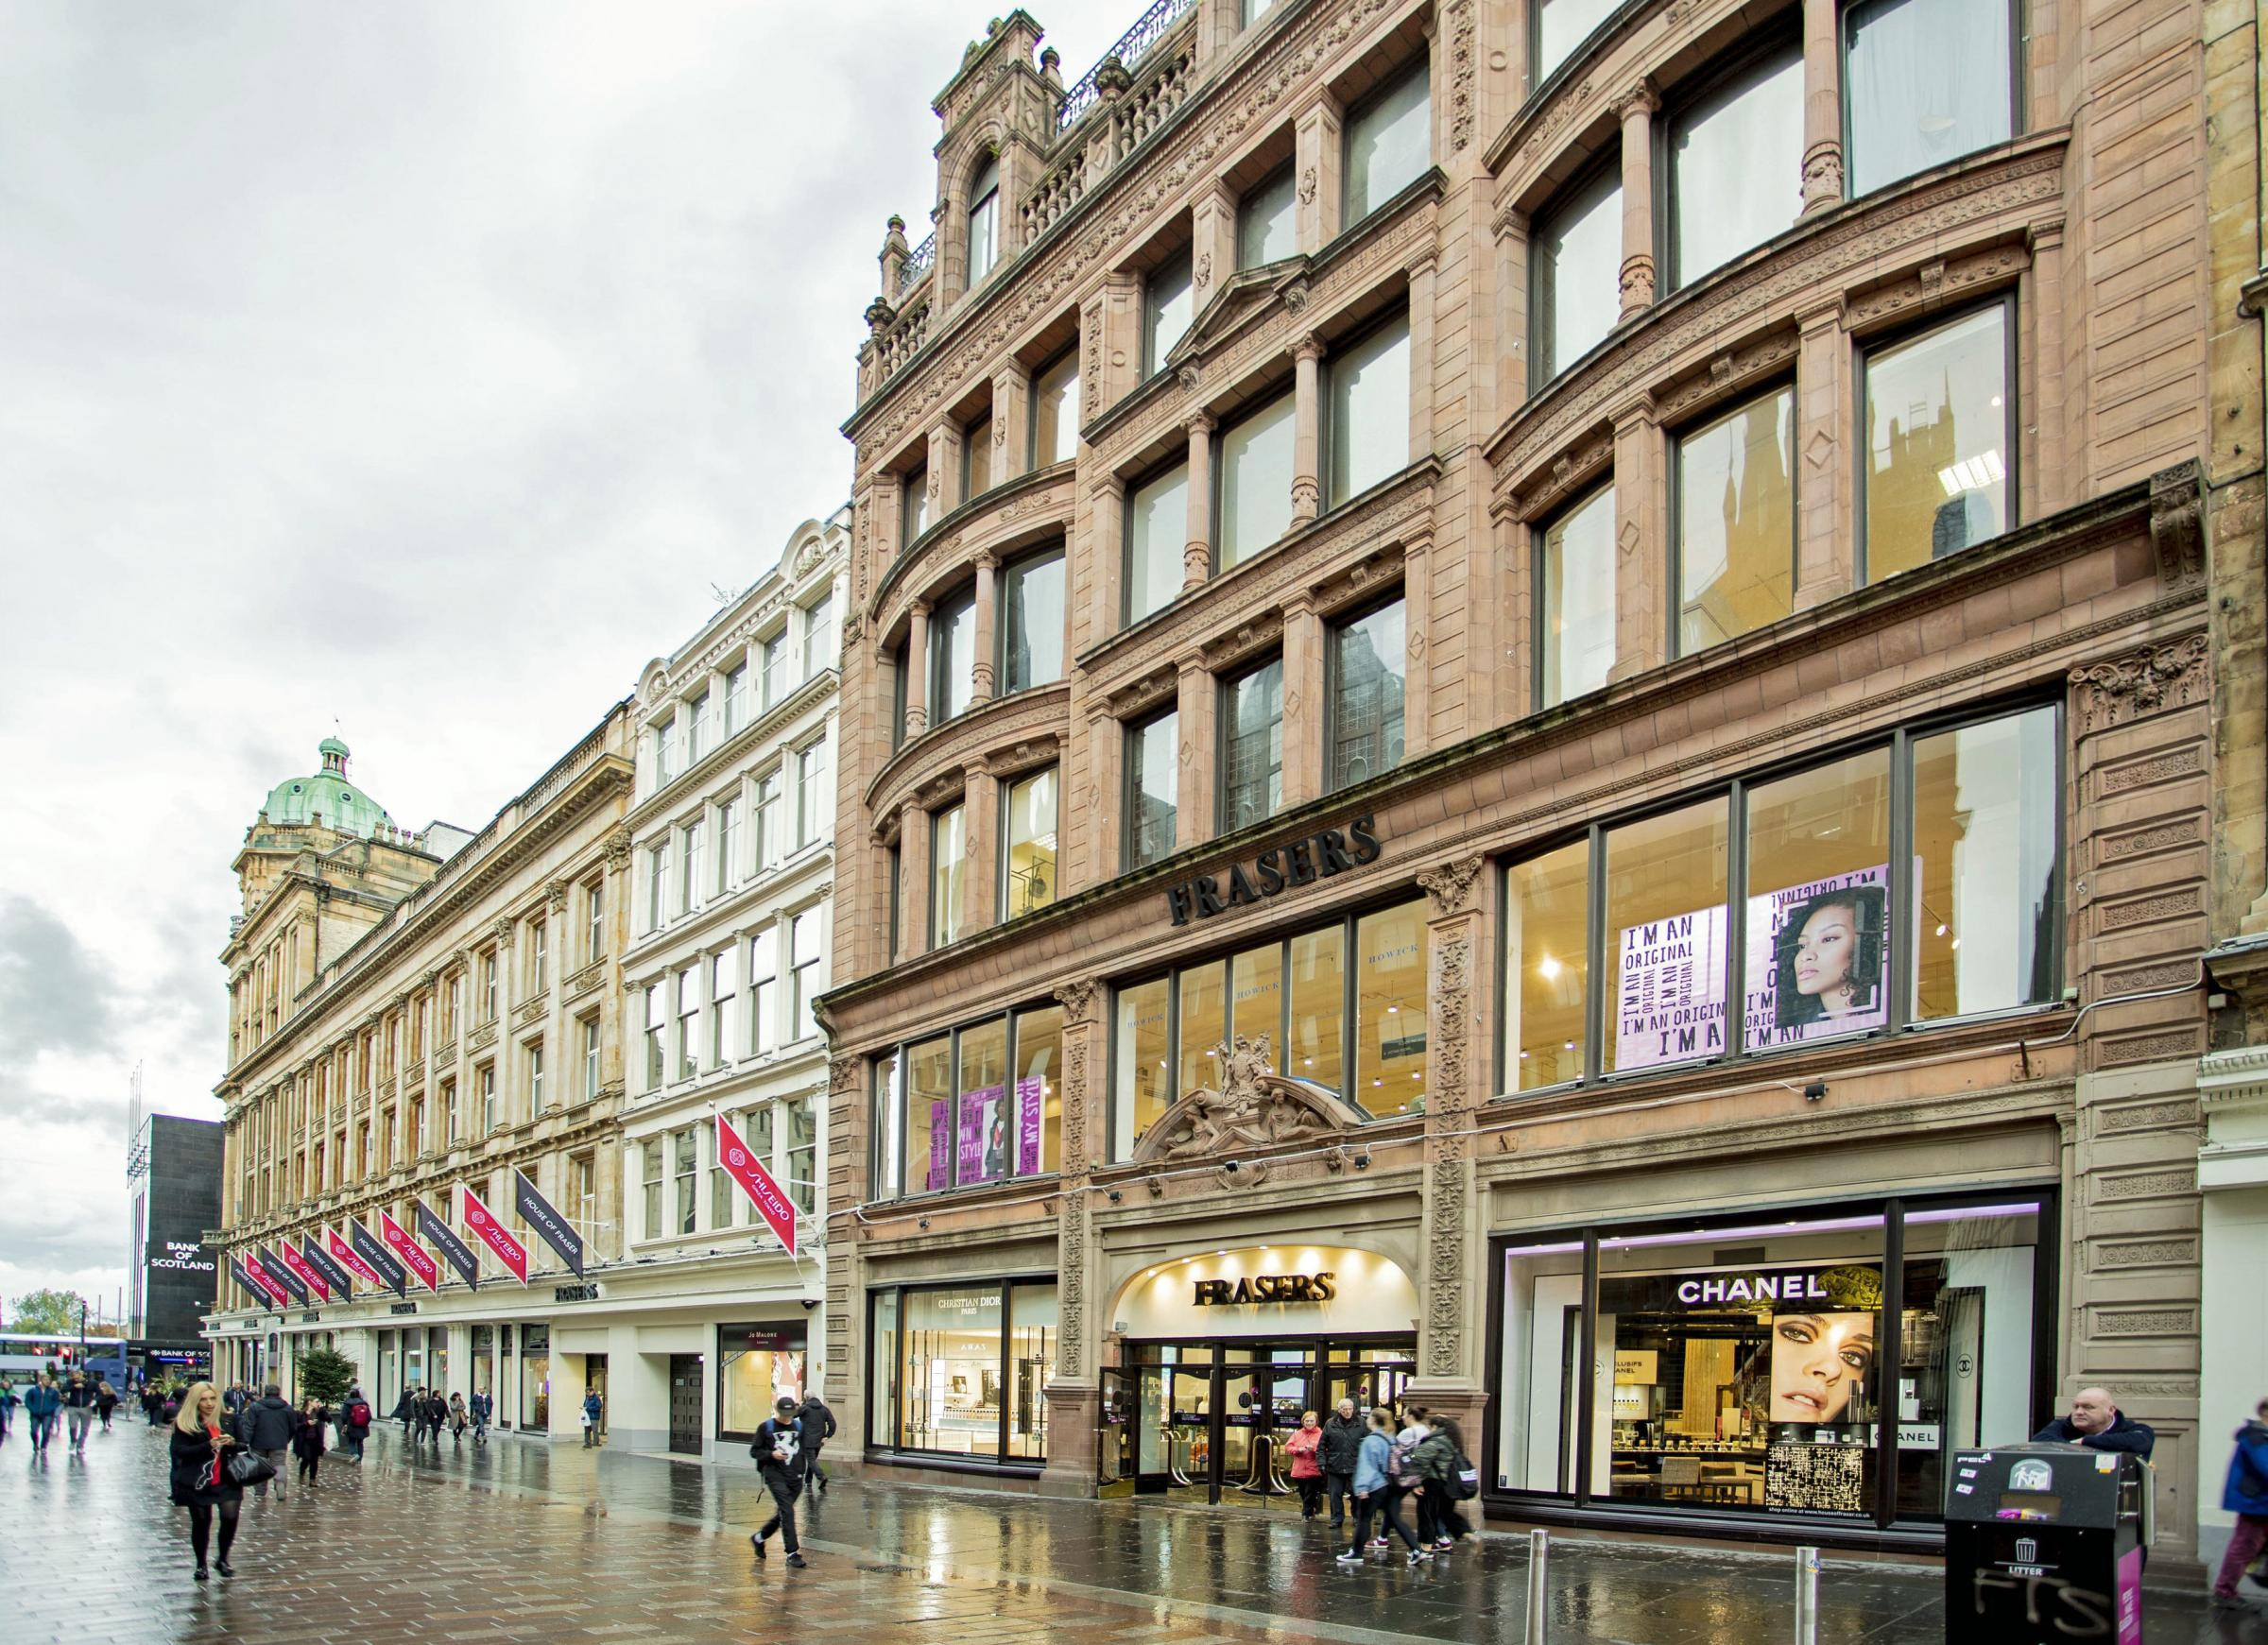 The Frasers store in Glasgow